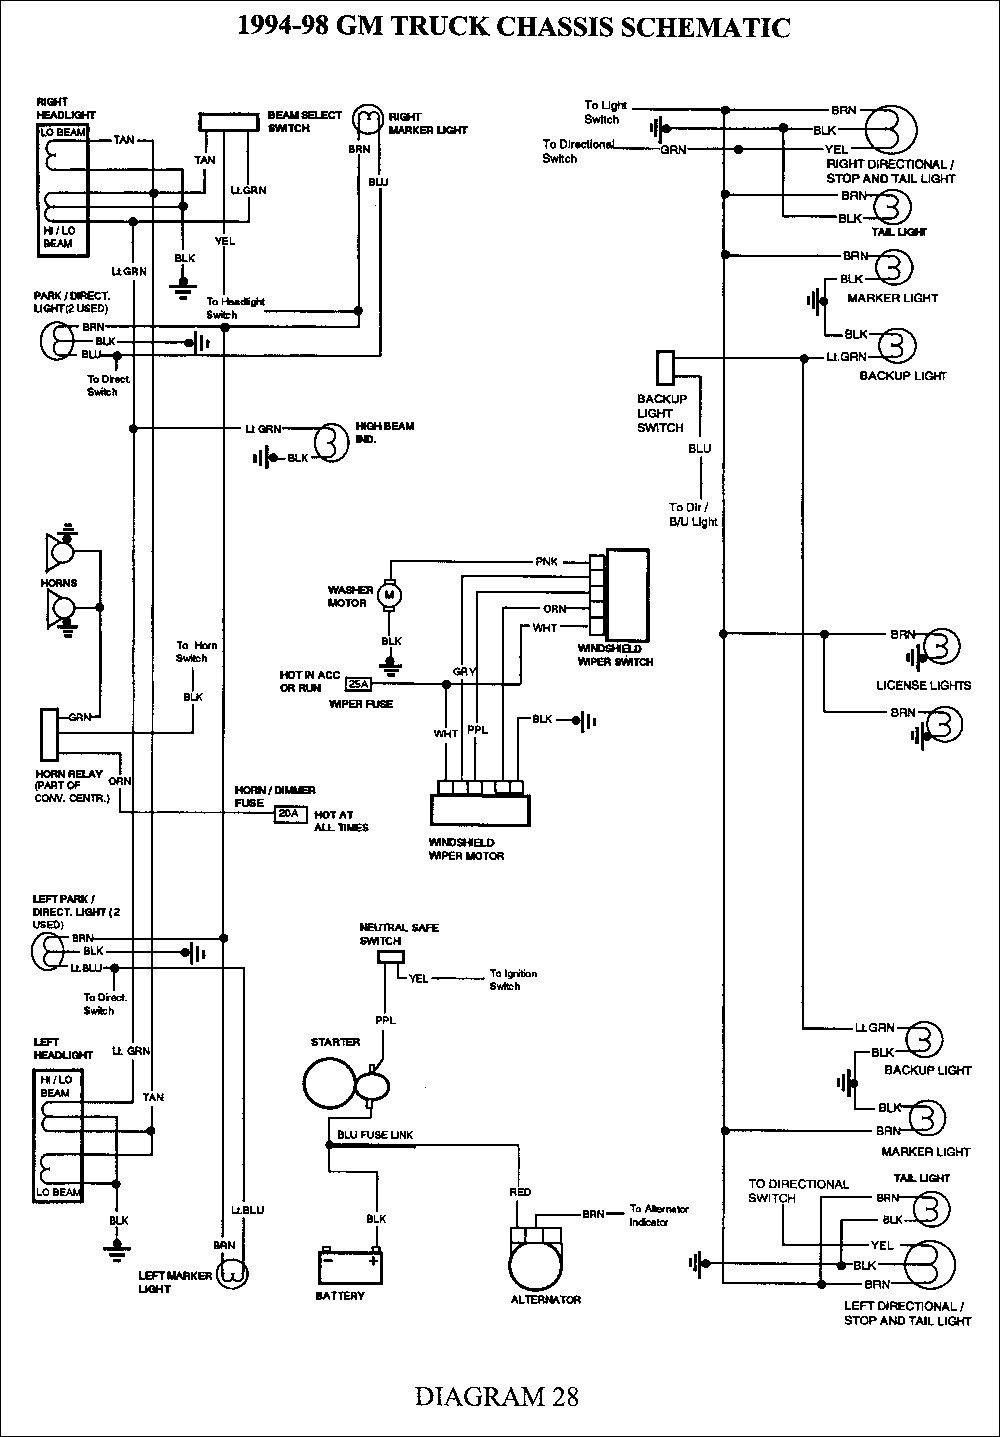 hight resolution of chevy c5500 wiring diagram wiring diagram schematics rh ksefanzone com 2004 chevy c5500 wiring diagram 2006